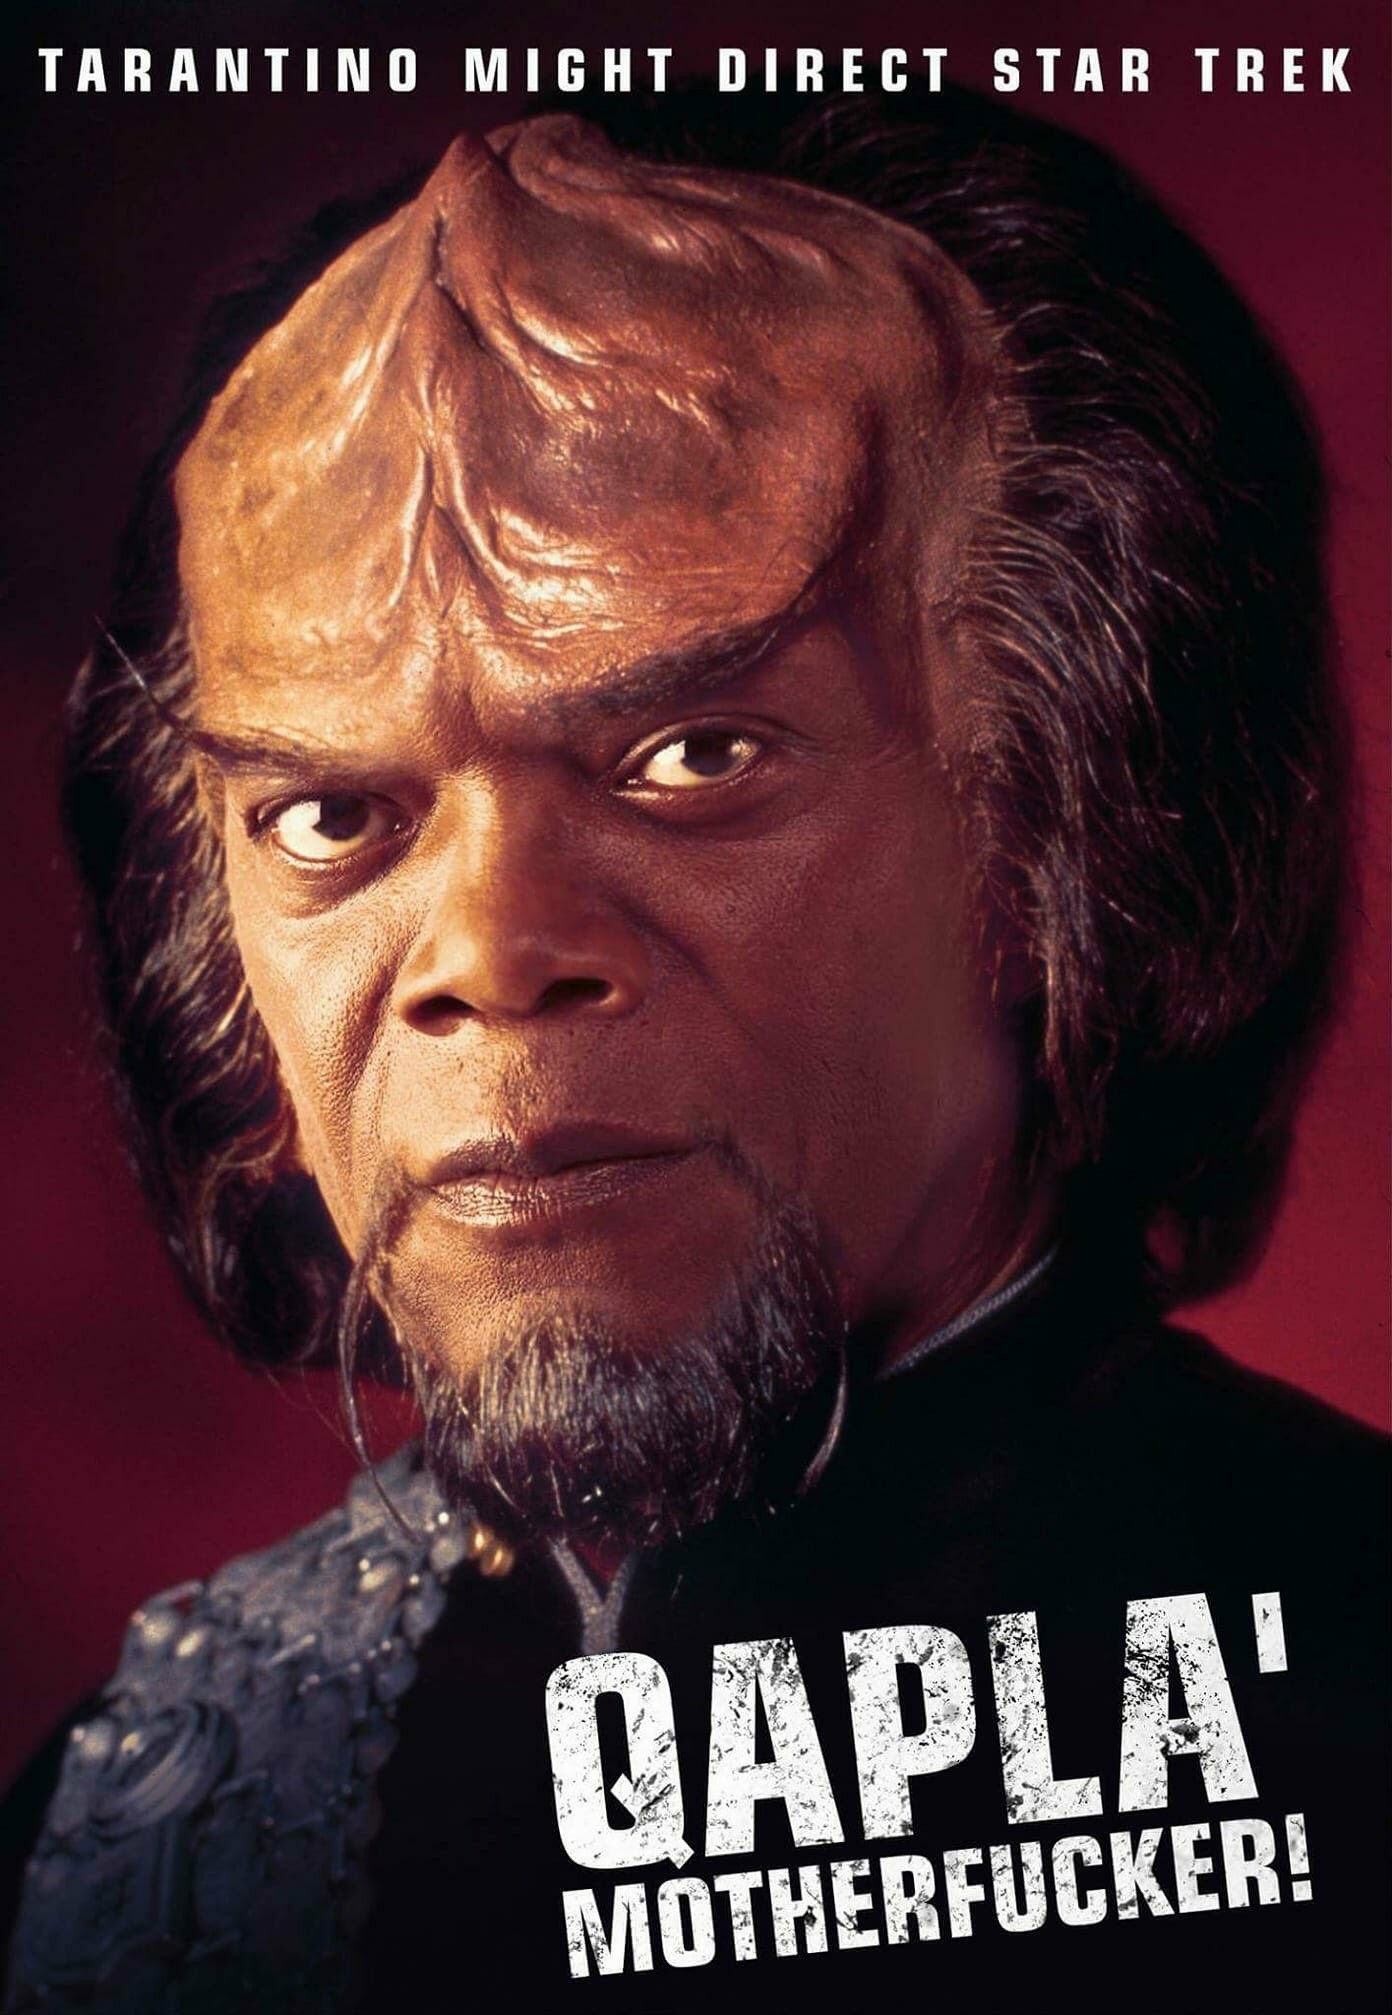 I'm a Klingon now motherfucker. - meme